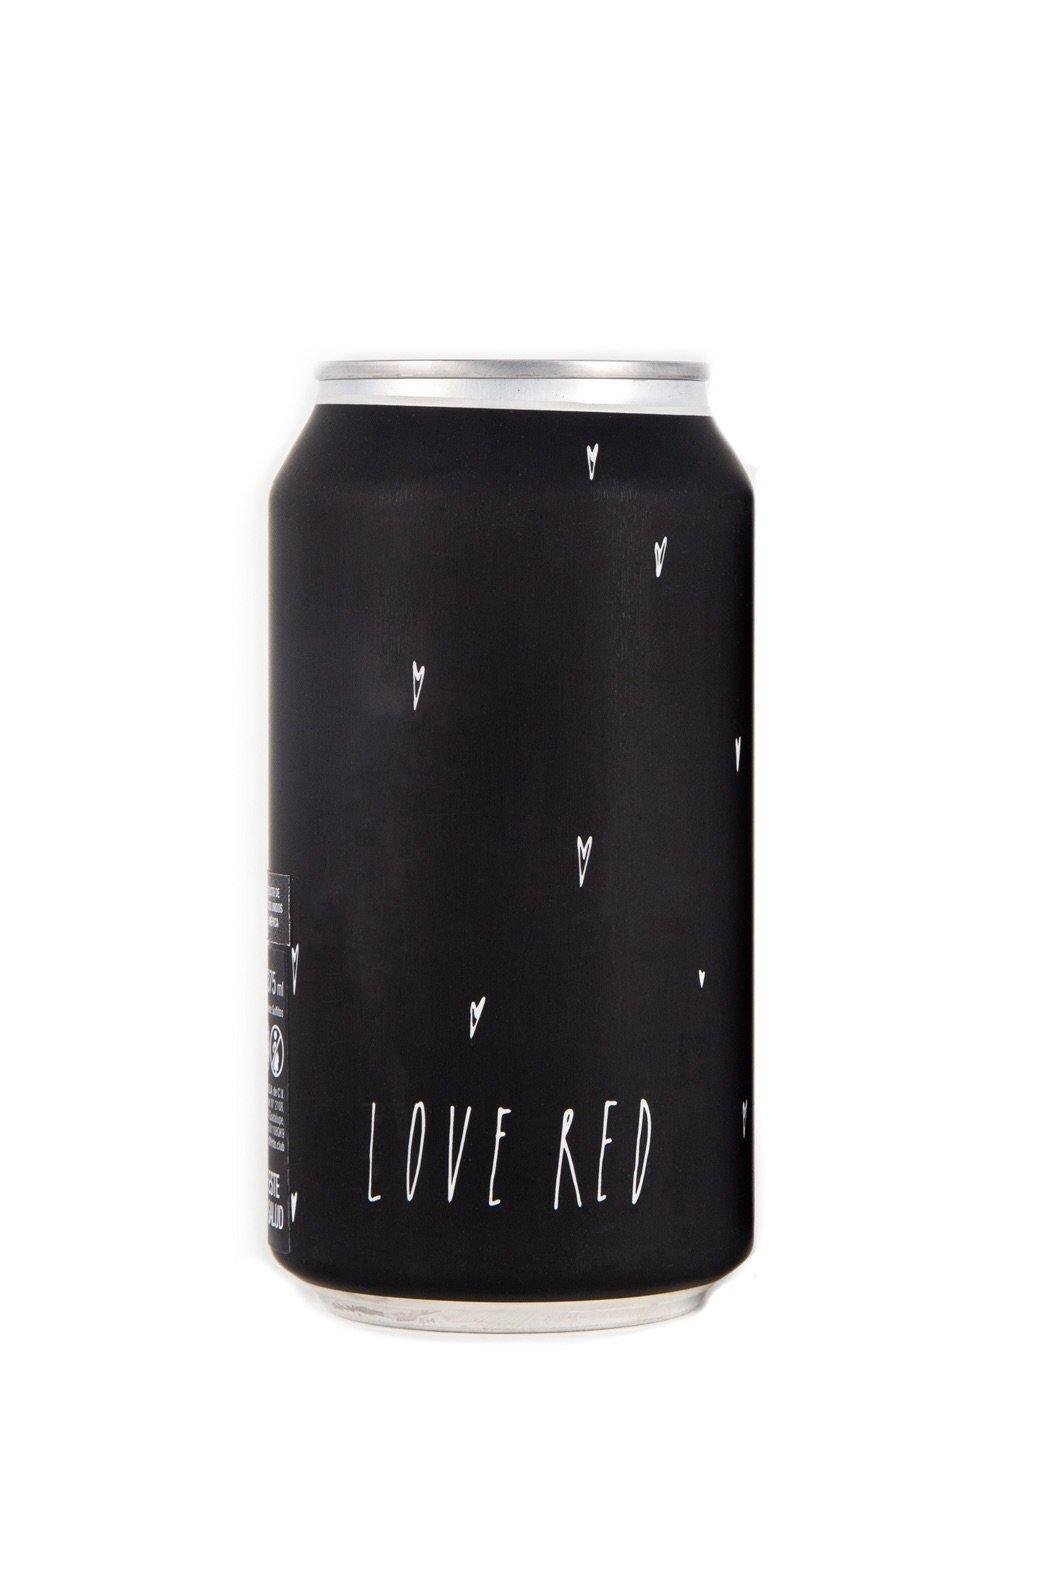 Love Red Cans 2019 - Salvaje Vinos